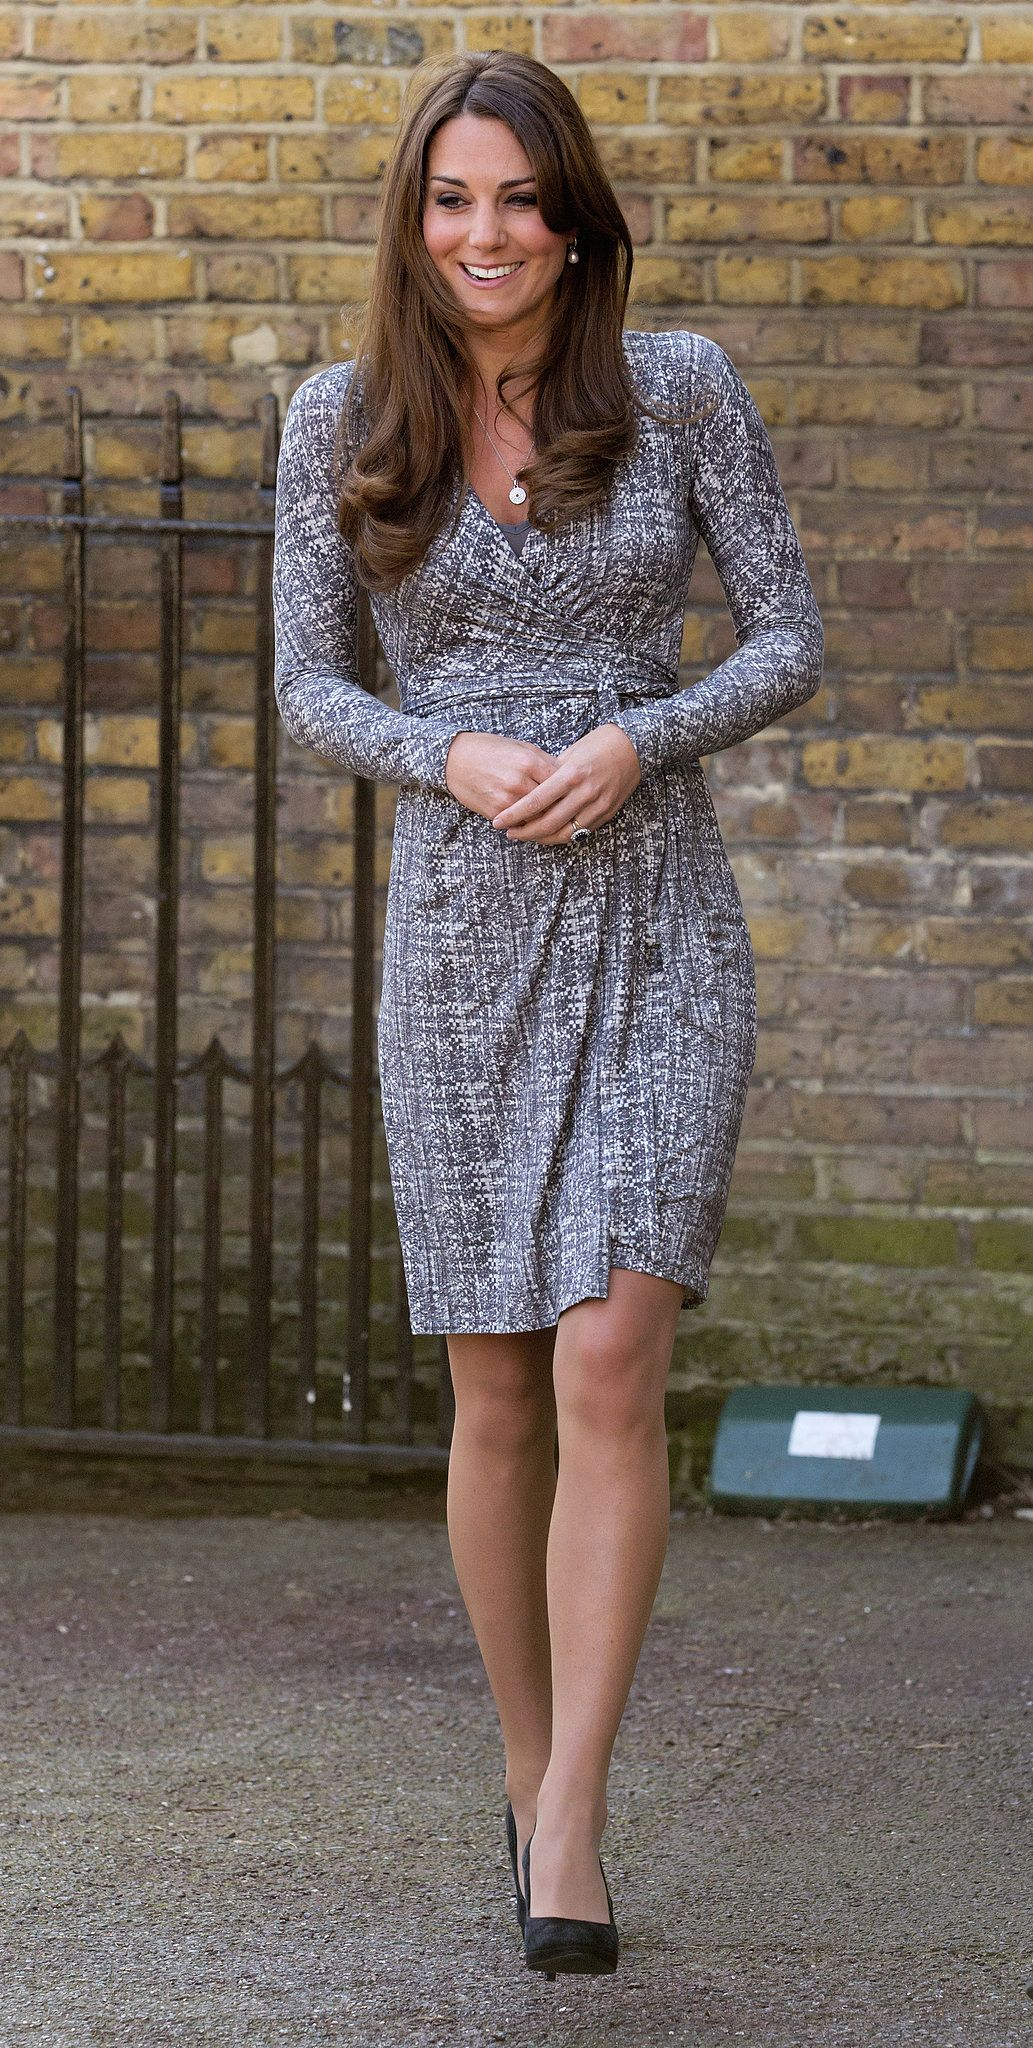 The best kate middleton moments of all time short vacation